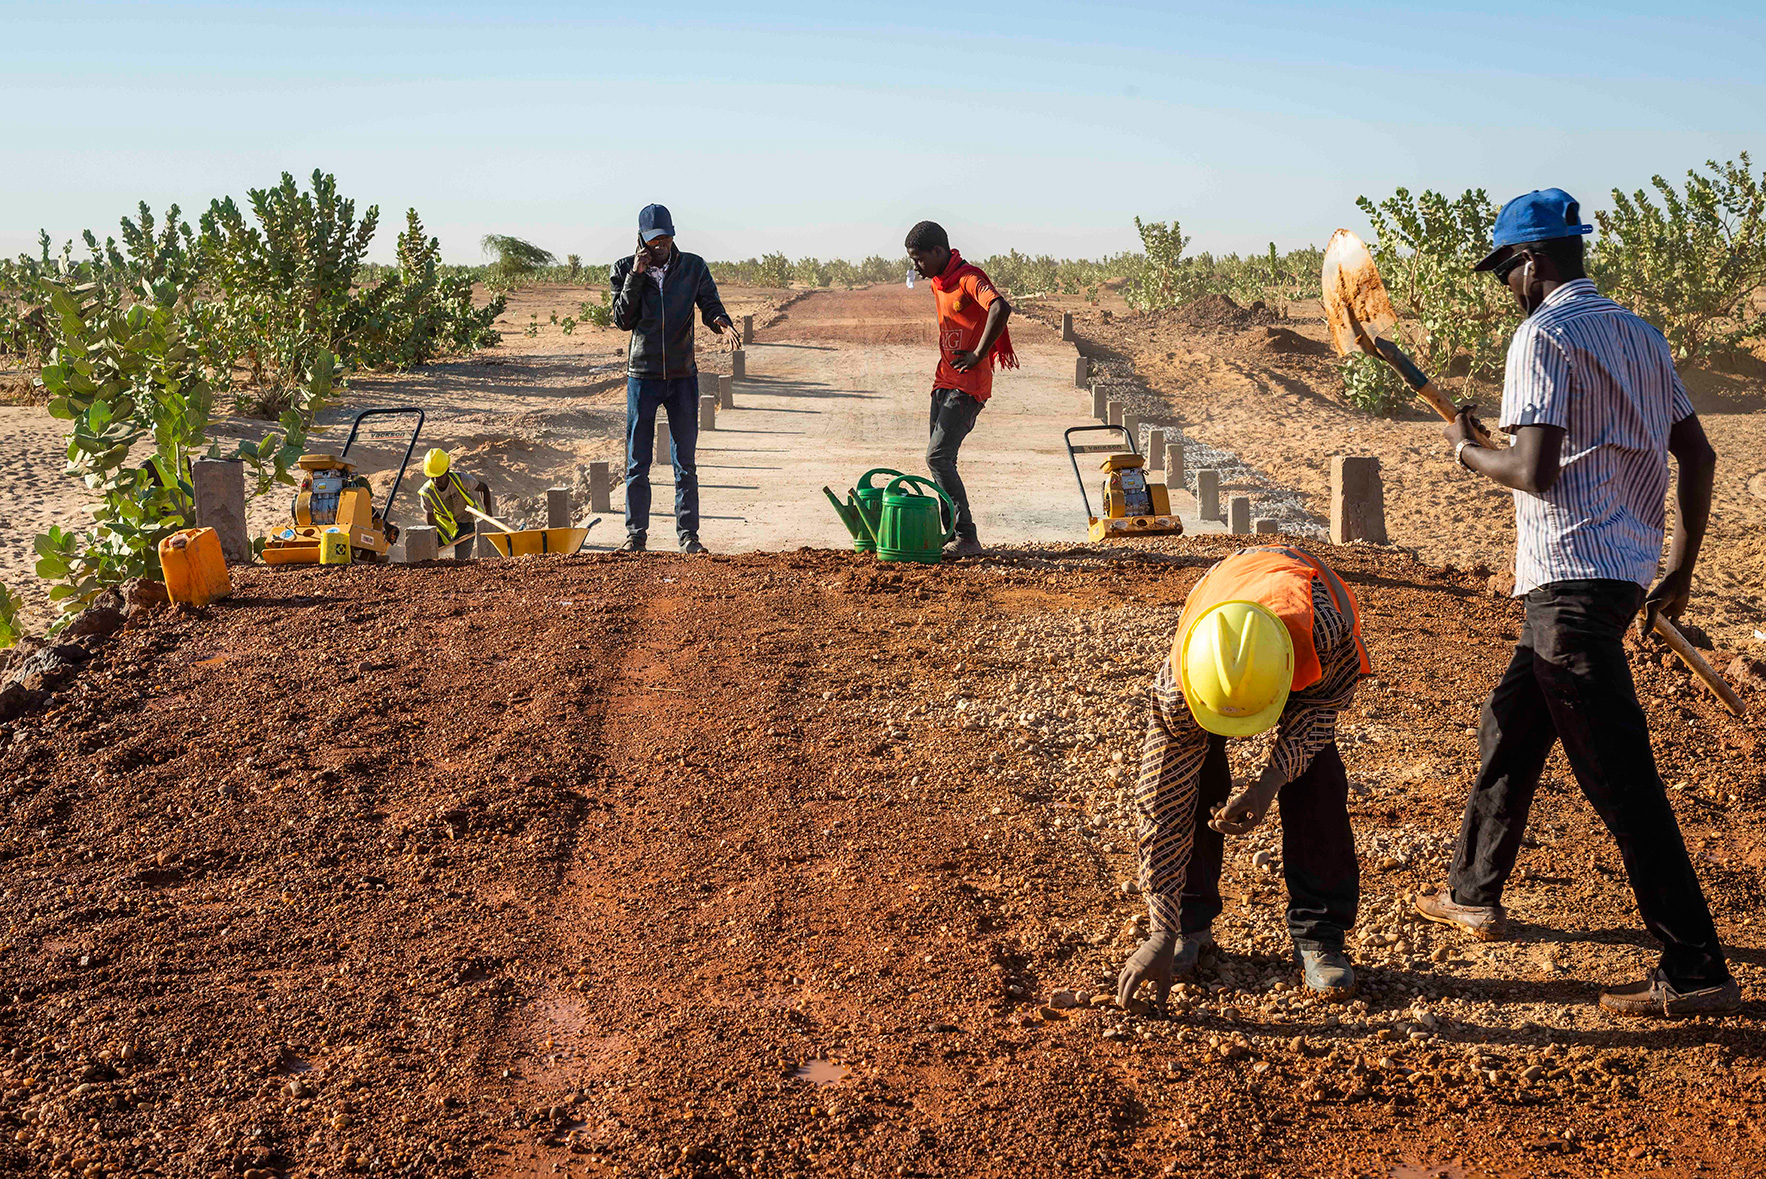 """""""Jobs that change lives"""": In Mauritania, prospects for a better life are now within reach for many young people"""